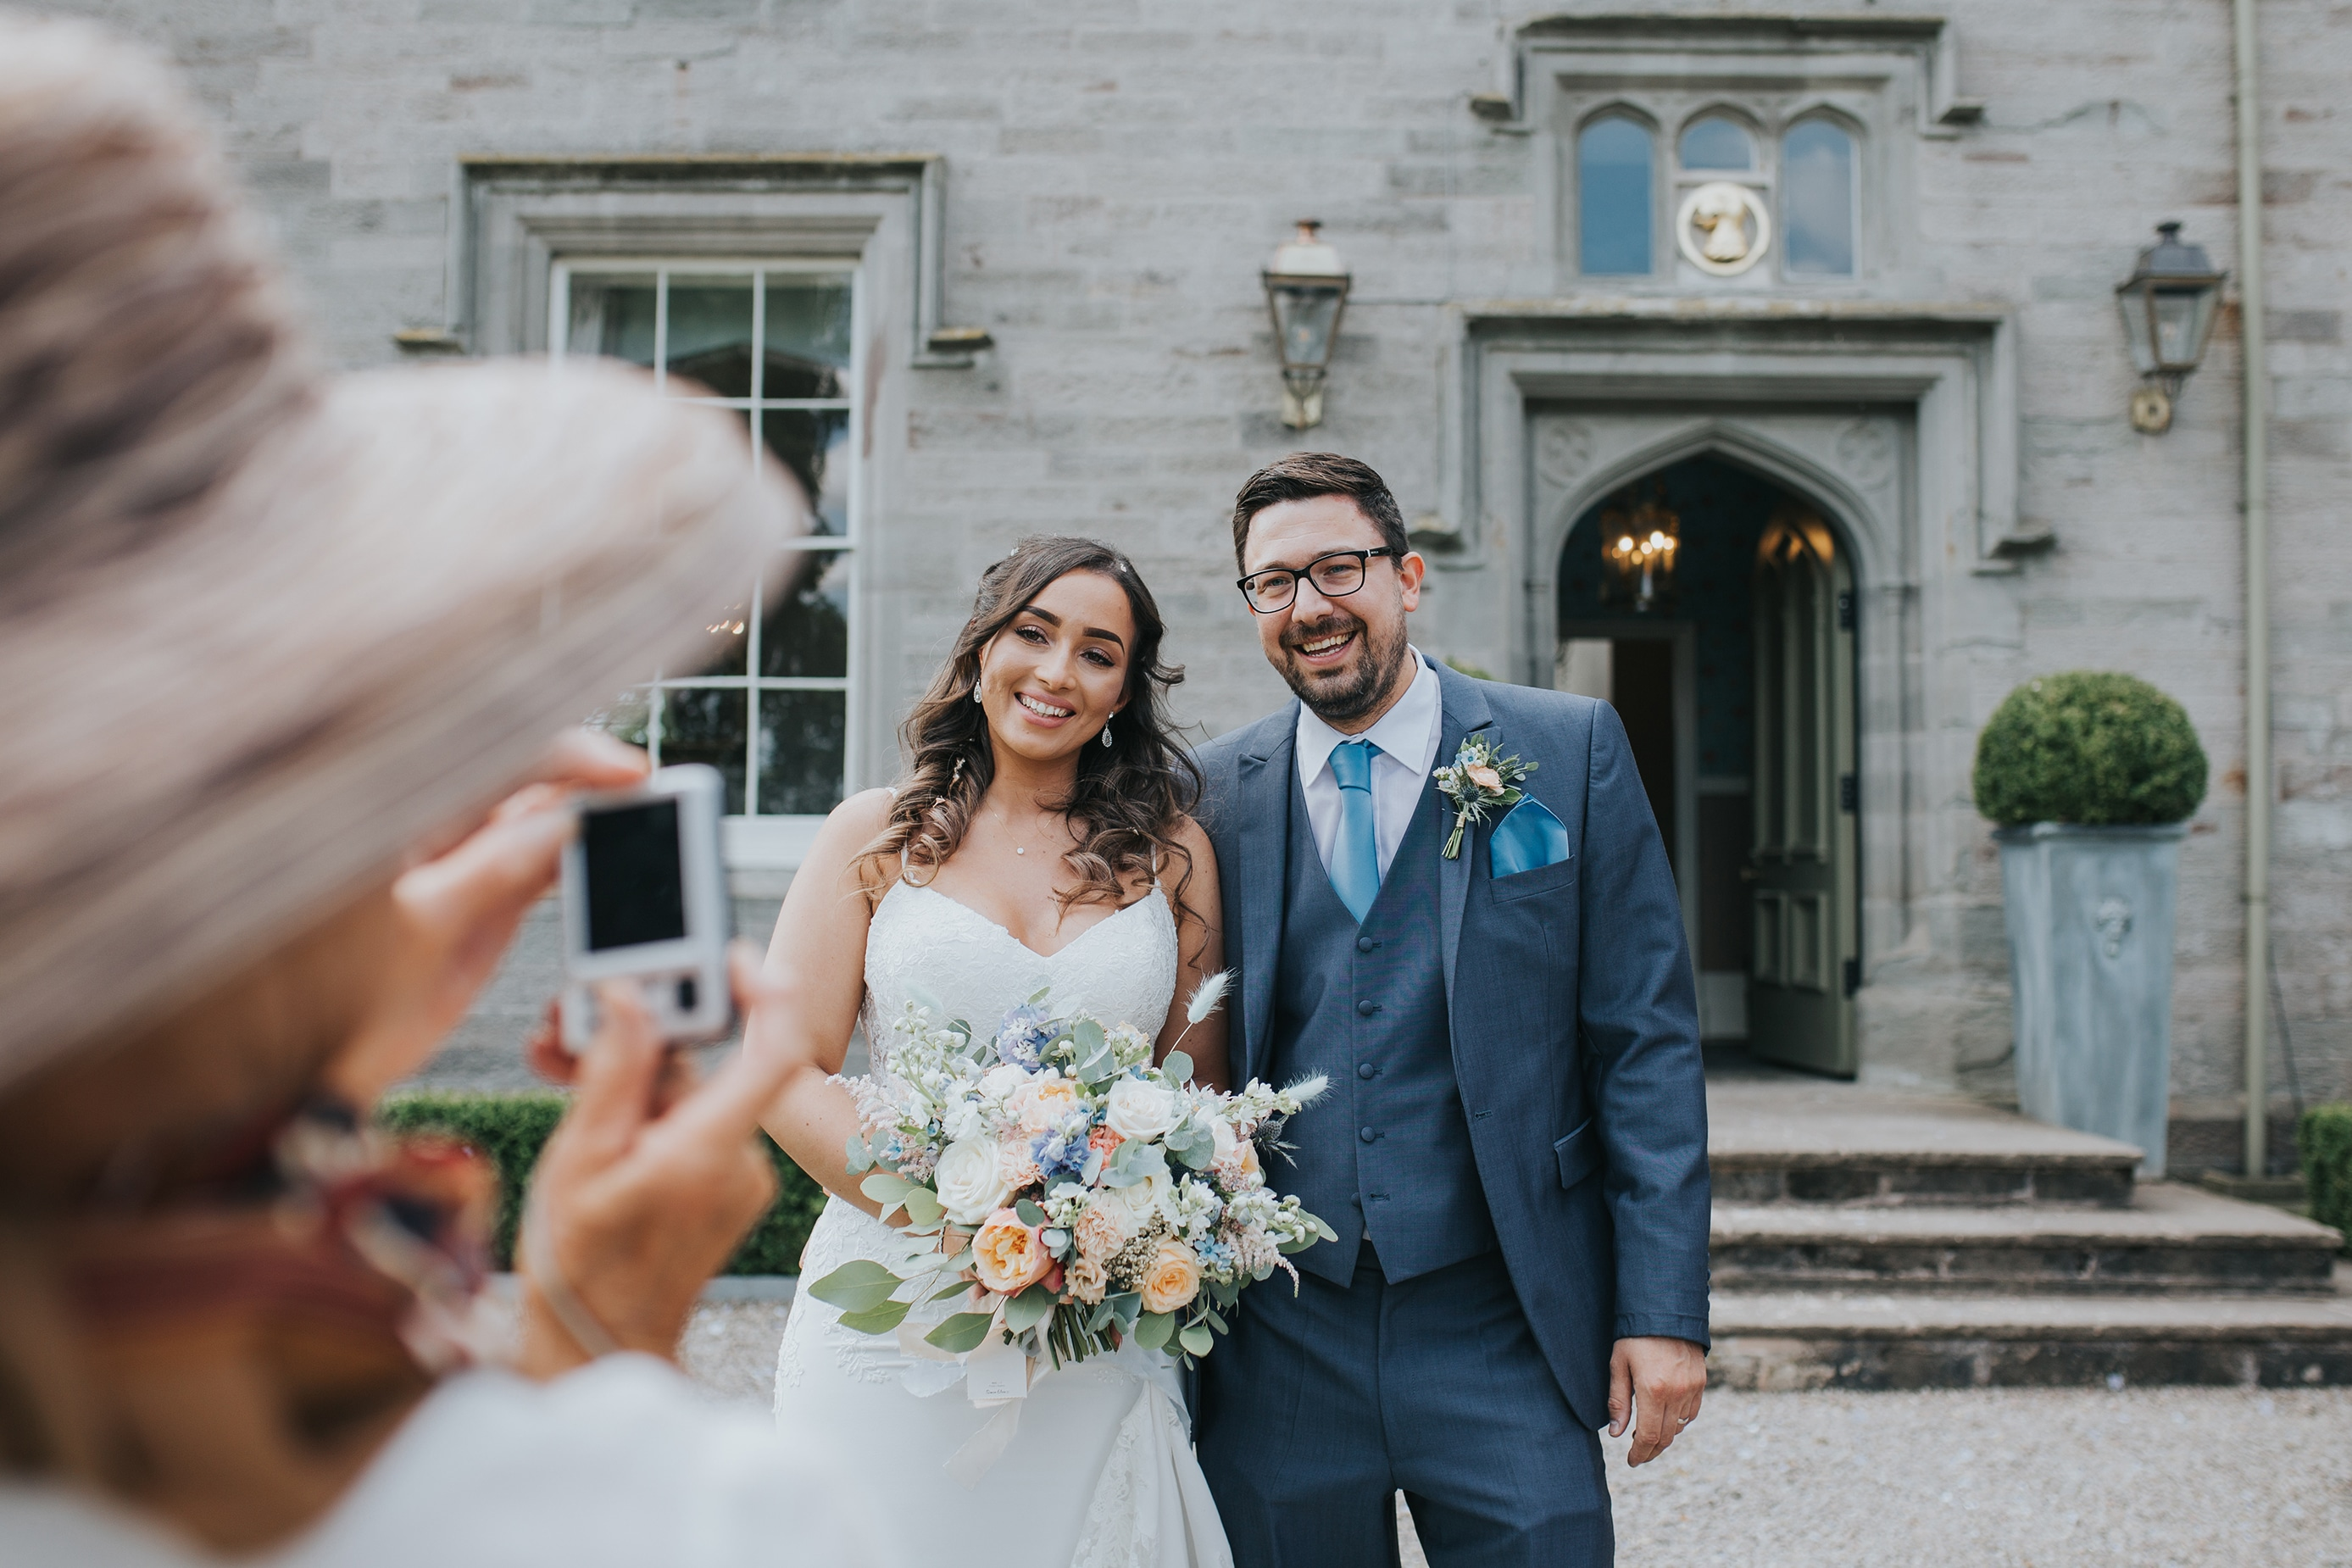 Candid Guest Photo at a Lemore Manor Wedding in Hereford